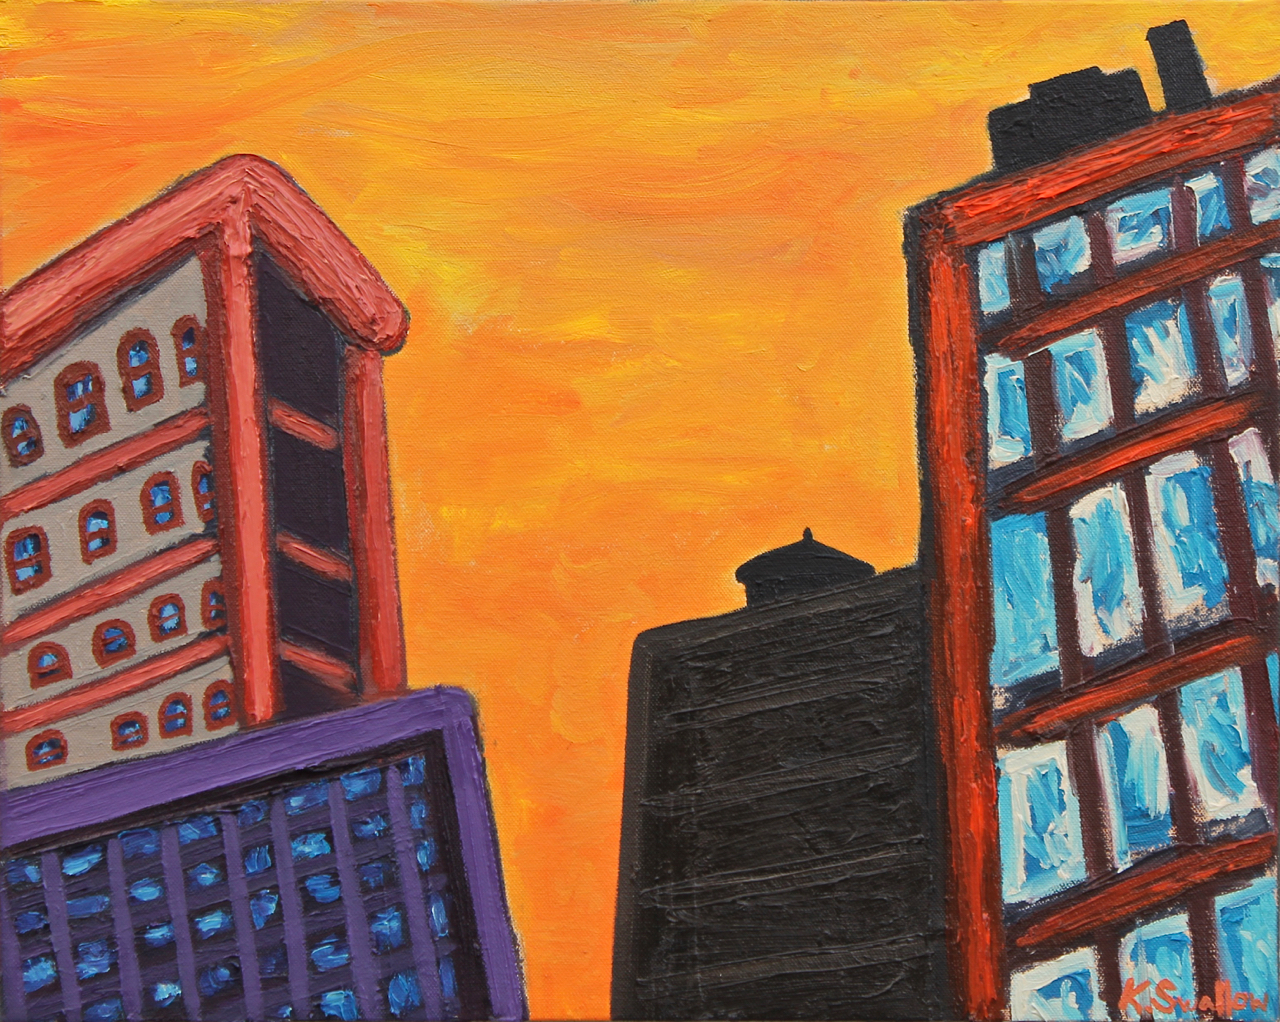 Sunset In the Loop, oil on canvas, 16x20, 2015, AVAILABLE